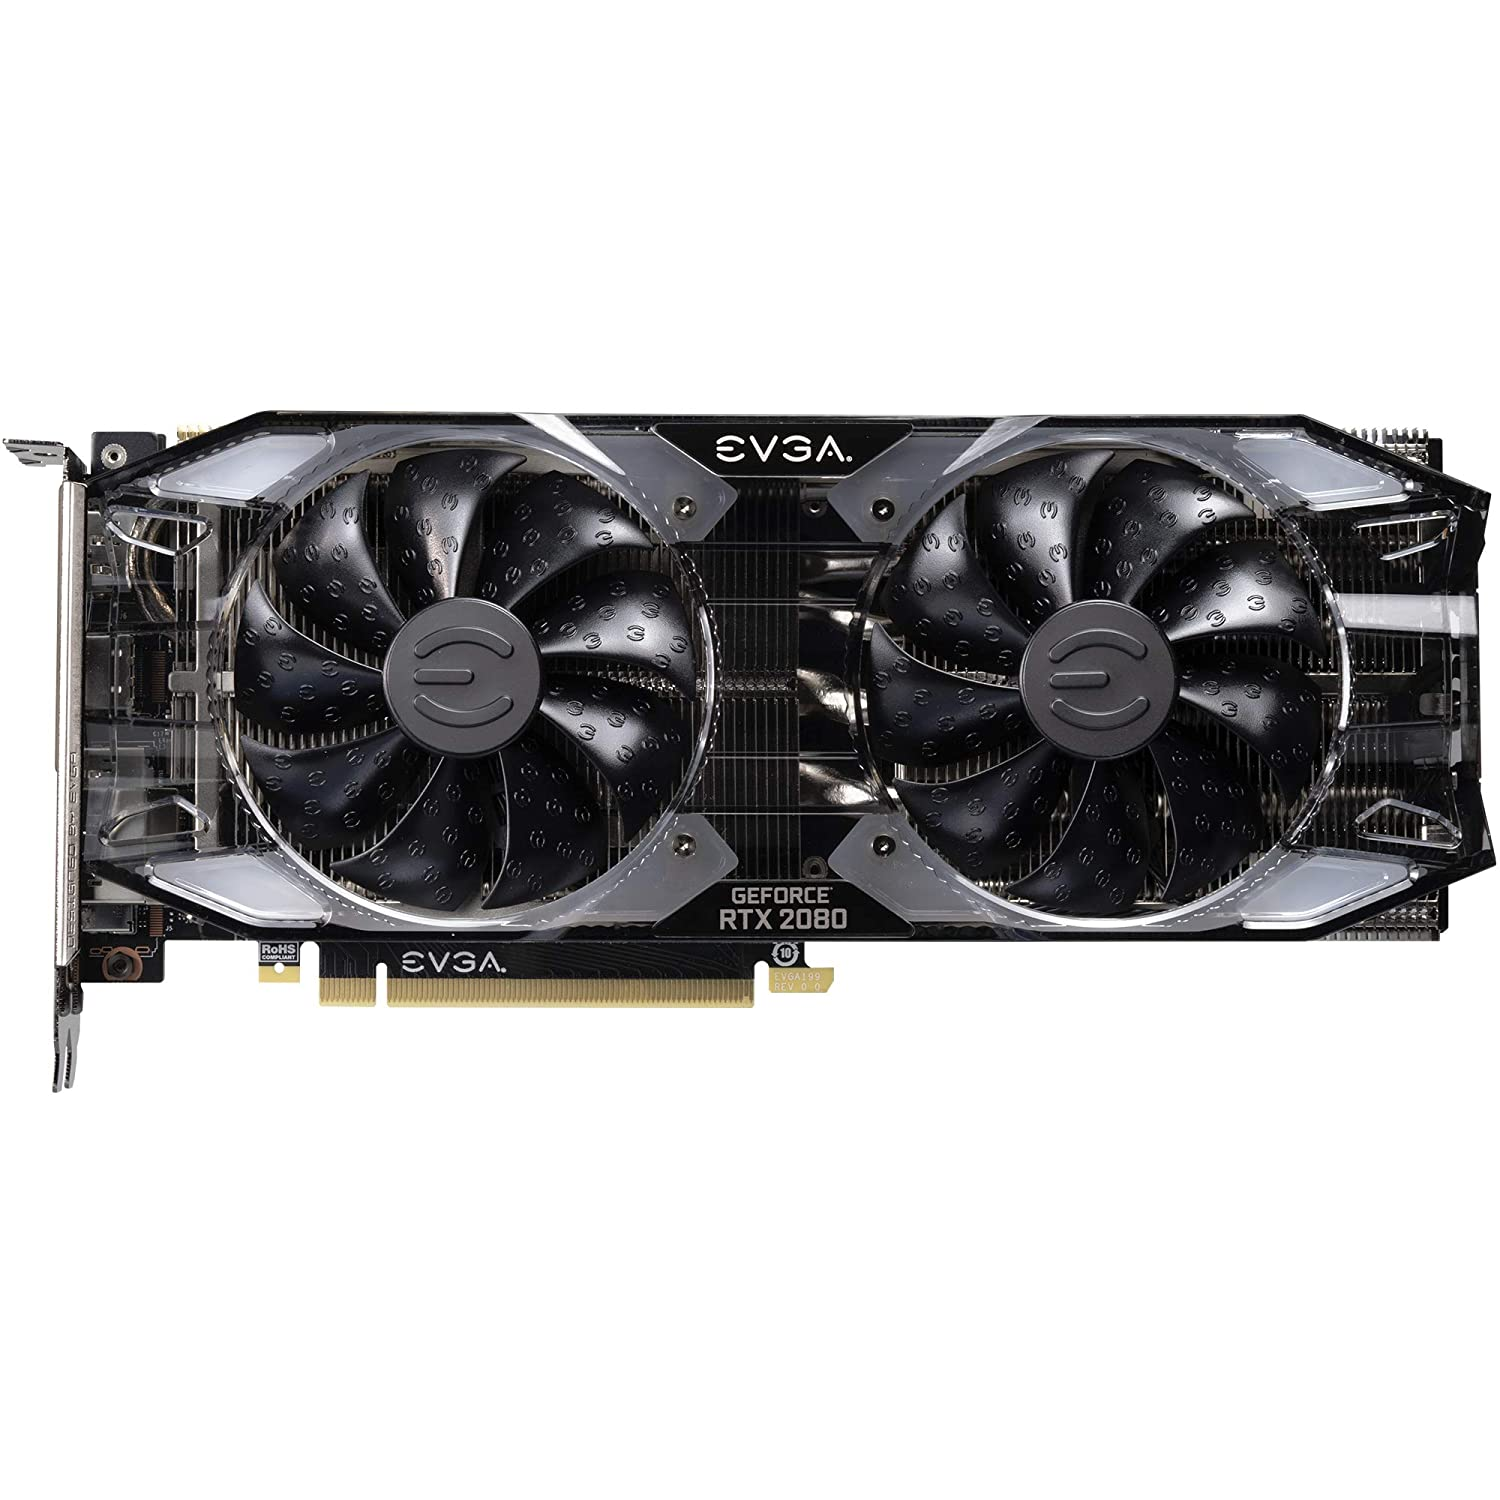 EVGA GeForce RTX 2080 XC GAMING, 8GB GDDR6, Dual HDB Fans & RGB LED  Graphics Card 08G-P4-2182-KR